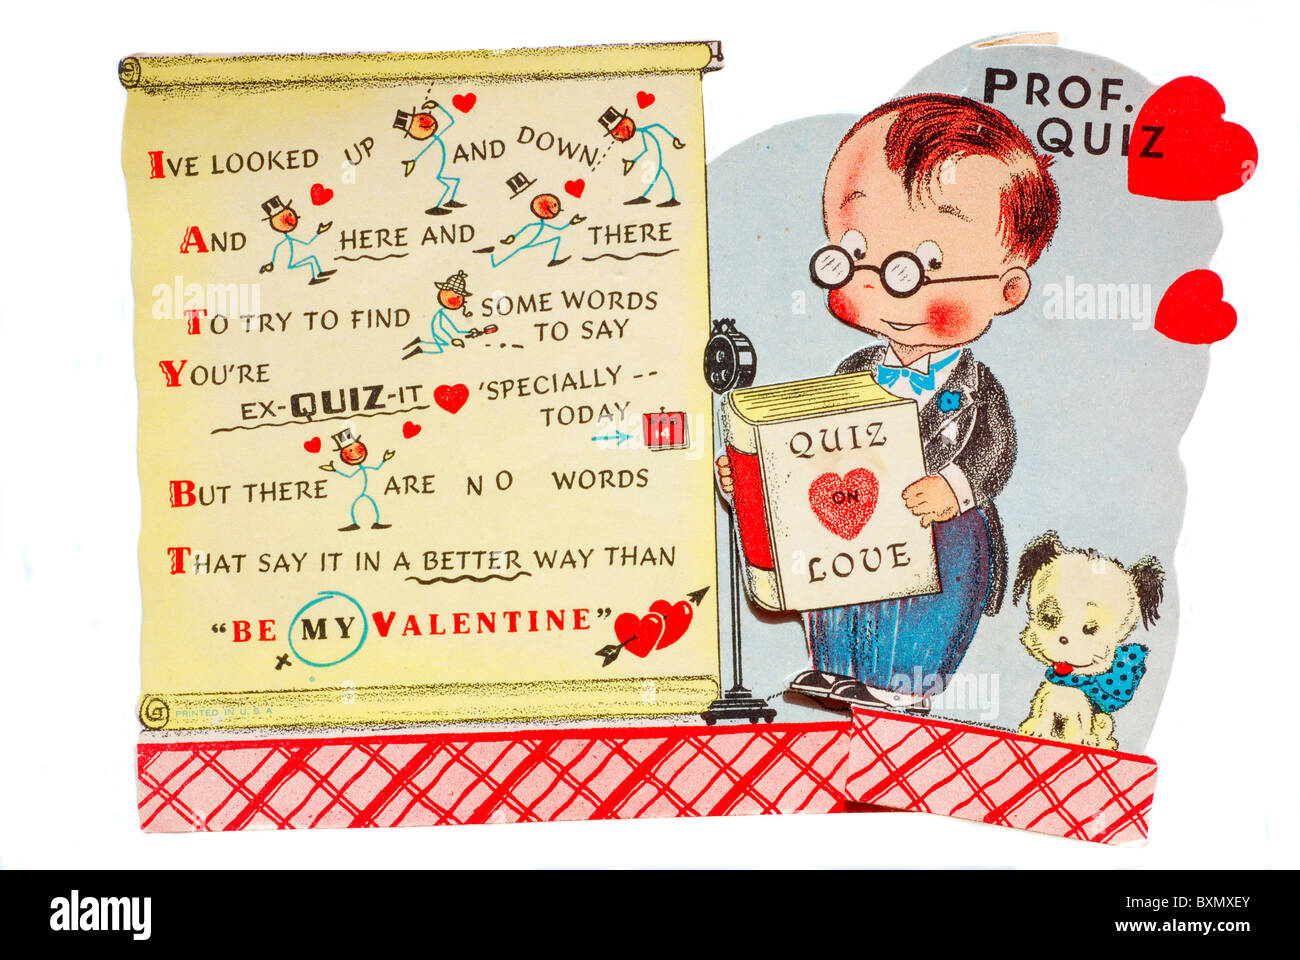 vintage valentines day card with professor quiz verified in public domain